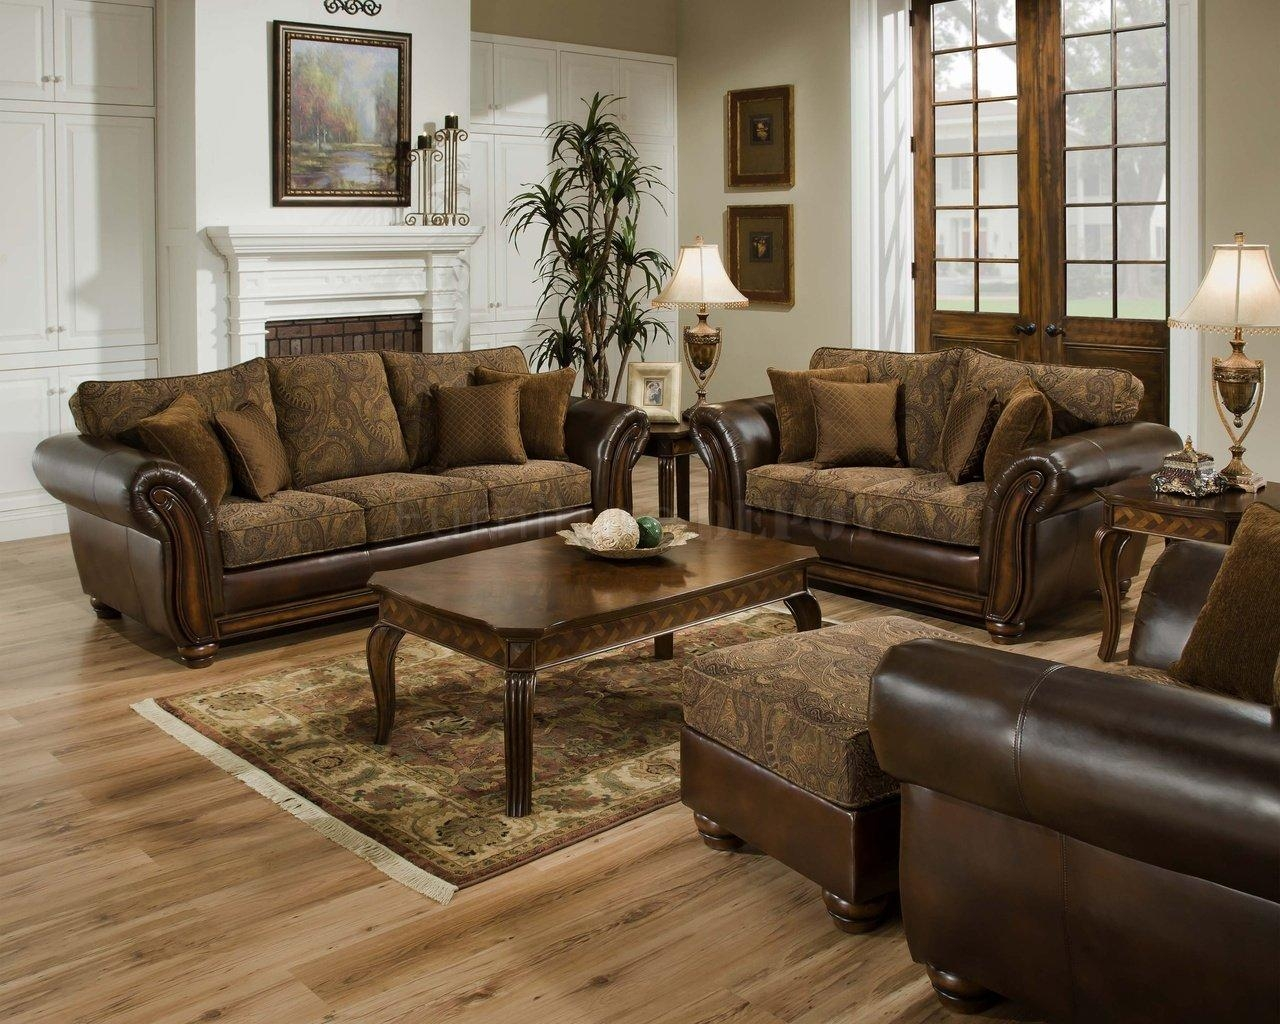 Black Leather Sofa And Loveseat Set | Tehranmix Decoration Intended For Black Leather Sofas And Loveseat Sets (Image 7 of 20)